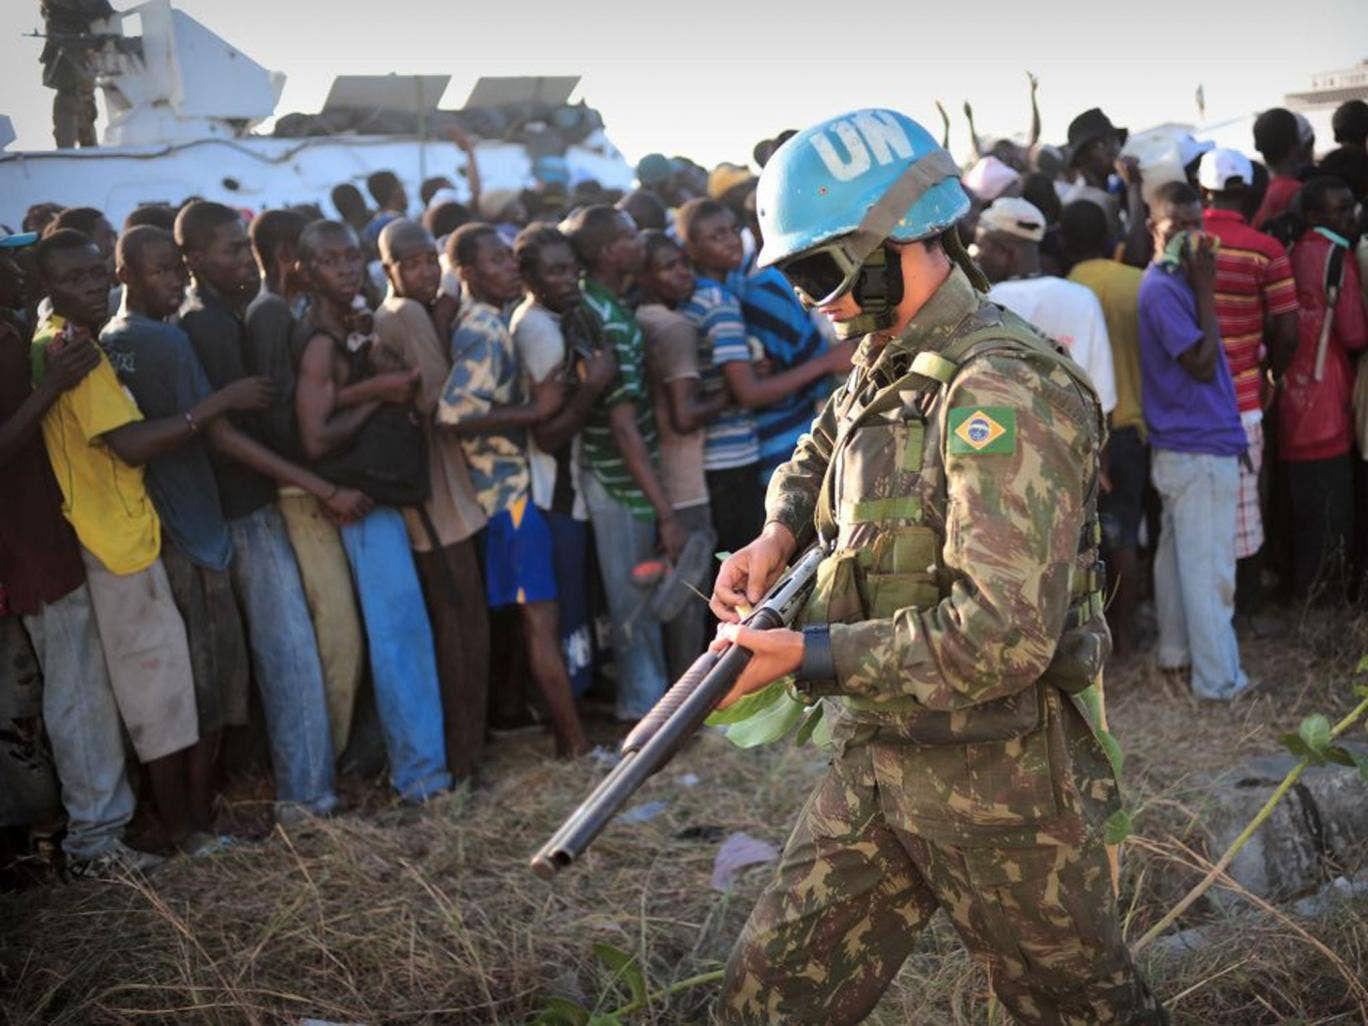 Nepalese peacekeepers who arrived in 2010 are widely believed to have  brought the disease to Haiti